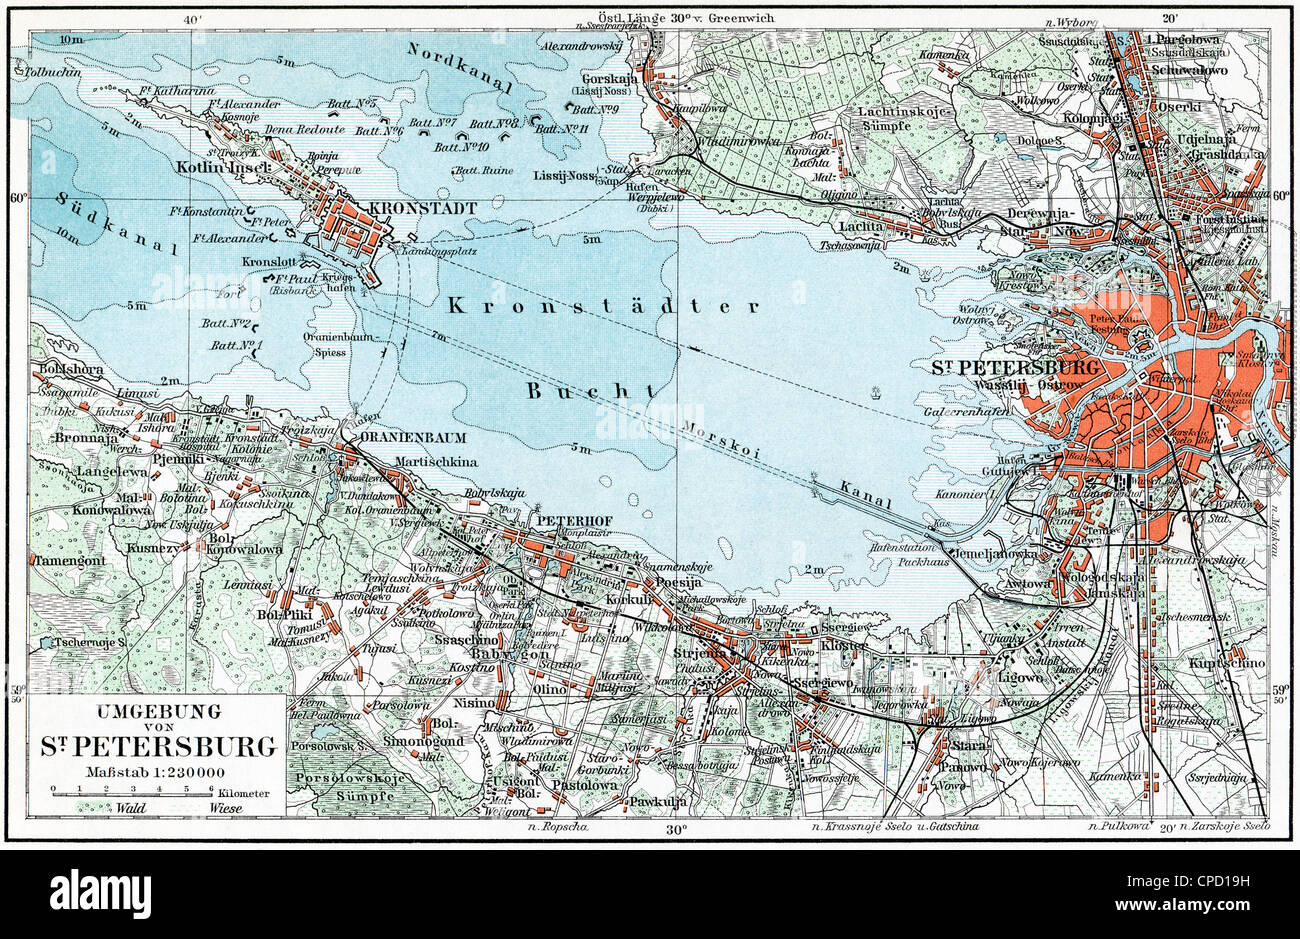 Map of St Petersburg and the surrounding area Kronstadt and the